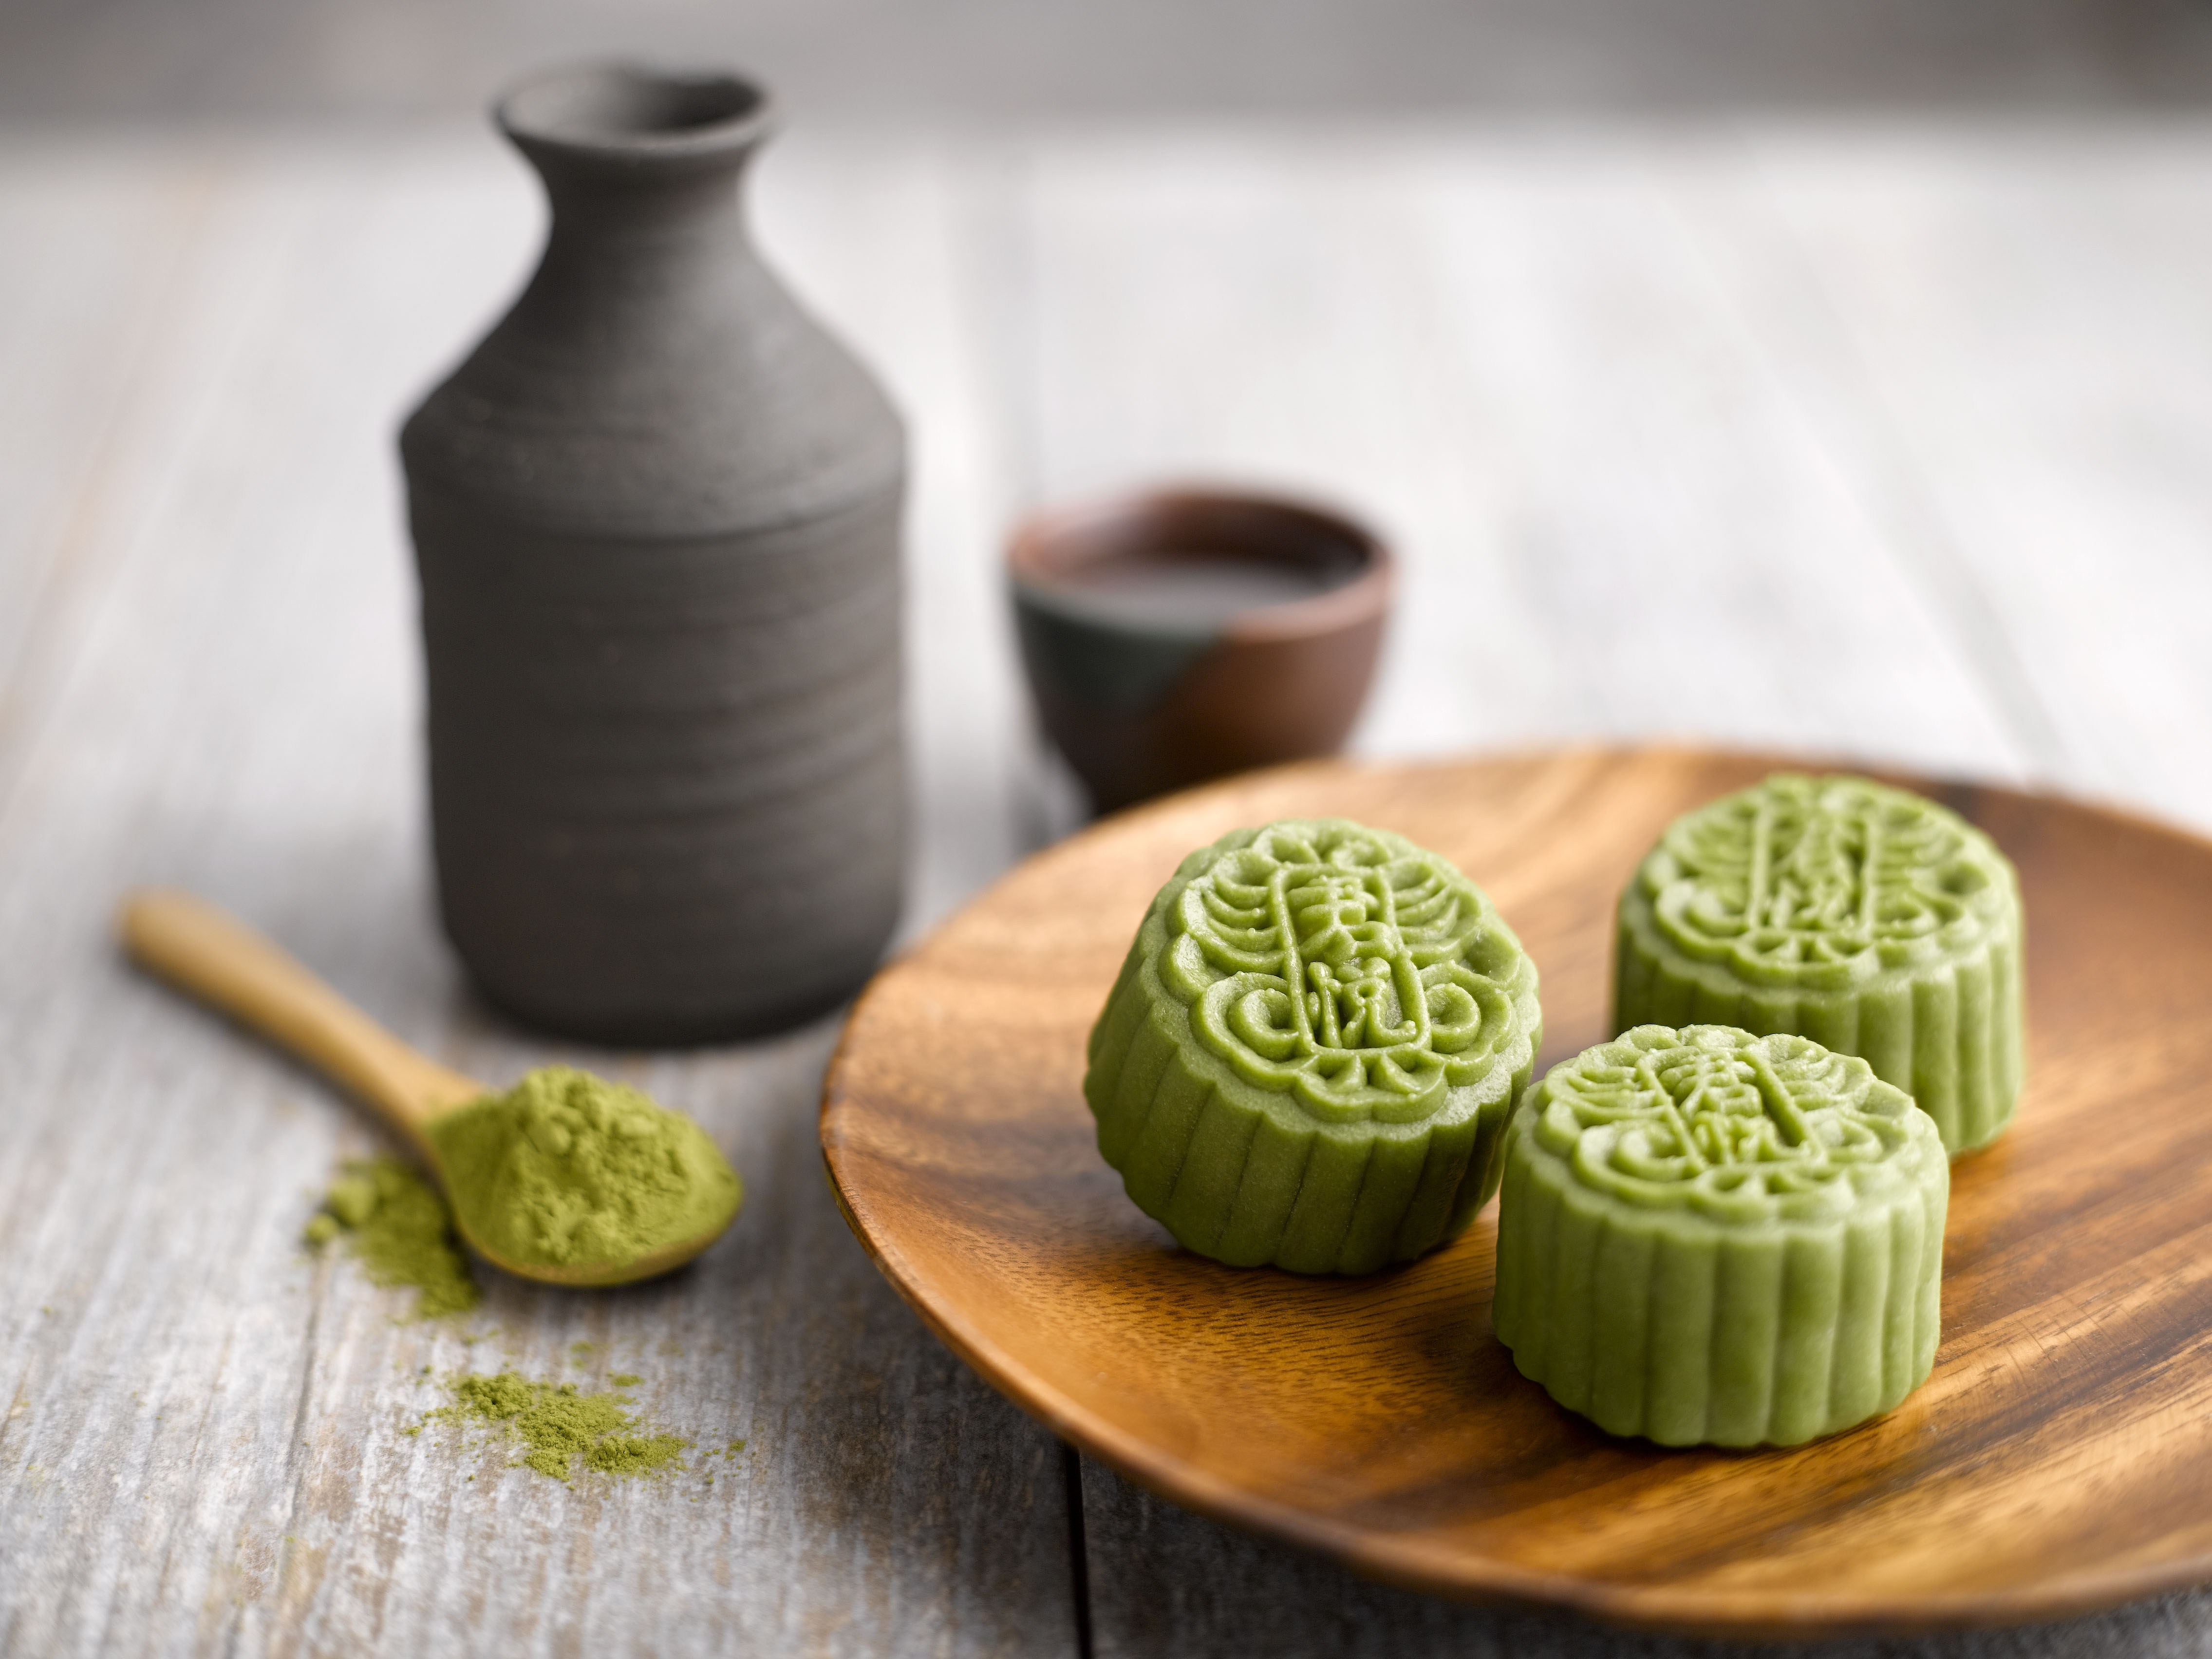 Saigon Mid Autumn Fest Be Completed With Moon Cakes